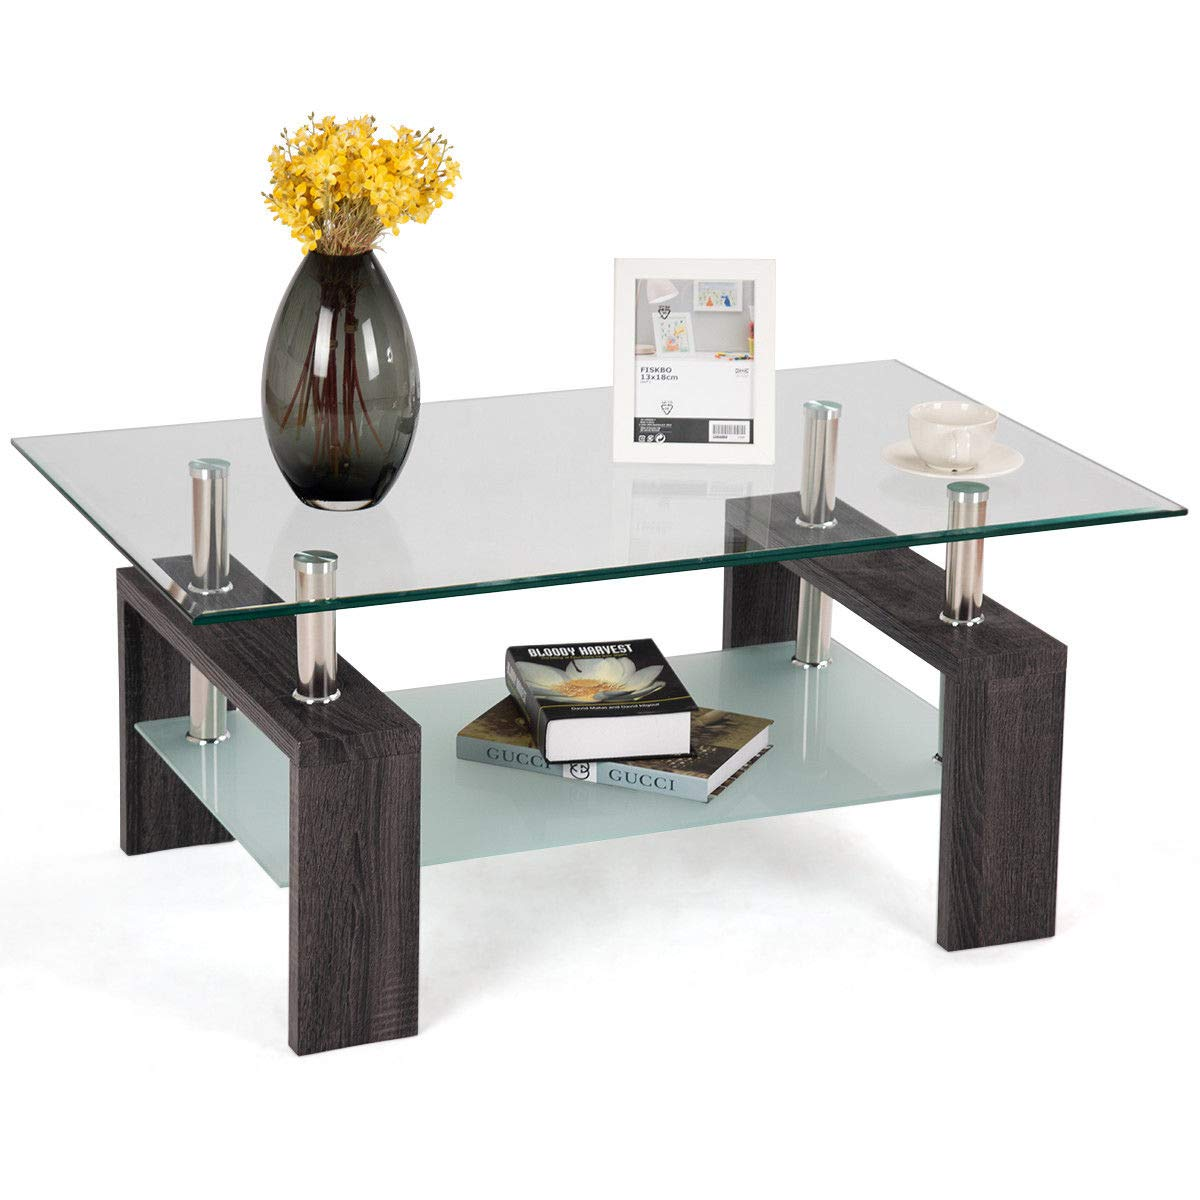 Coffee Black Phoenix Home Parla Rectangular Wood Coffee Table With Glass Top And Bottom Shelf Tables Zuiverlucht Coffee Tables